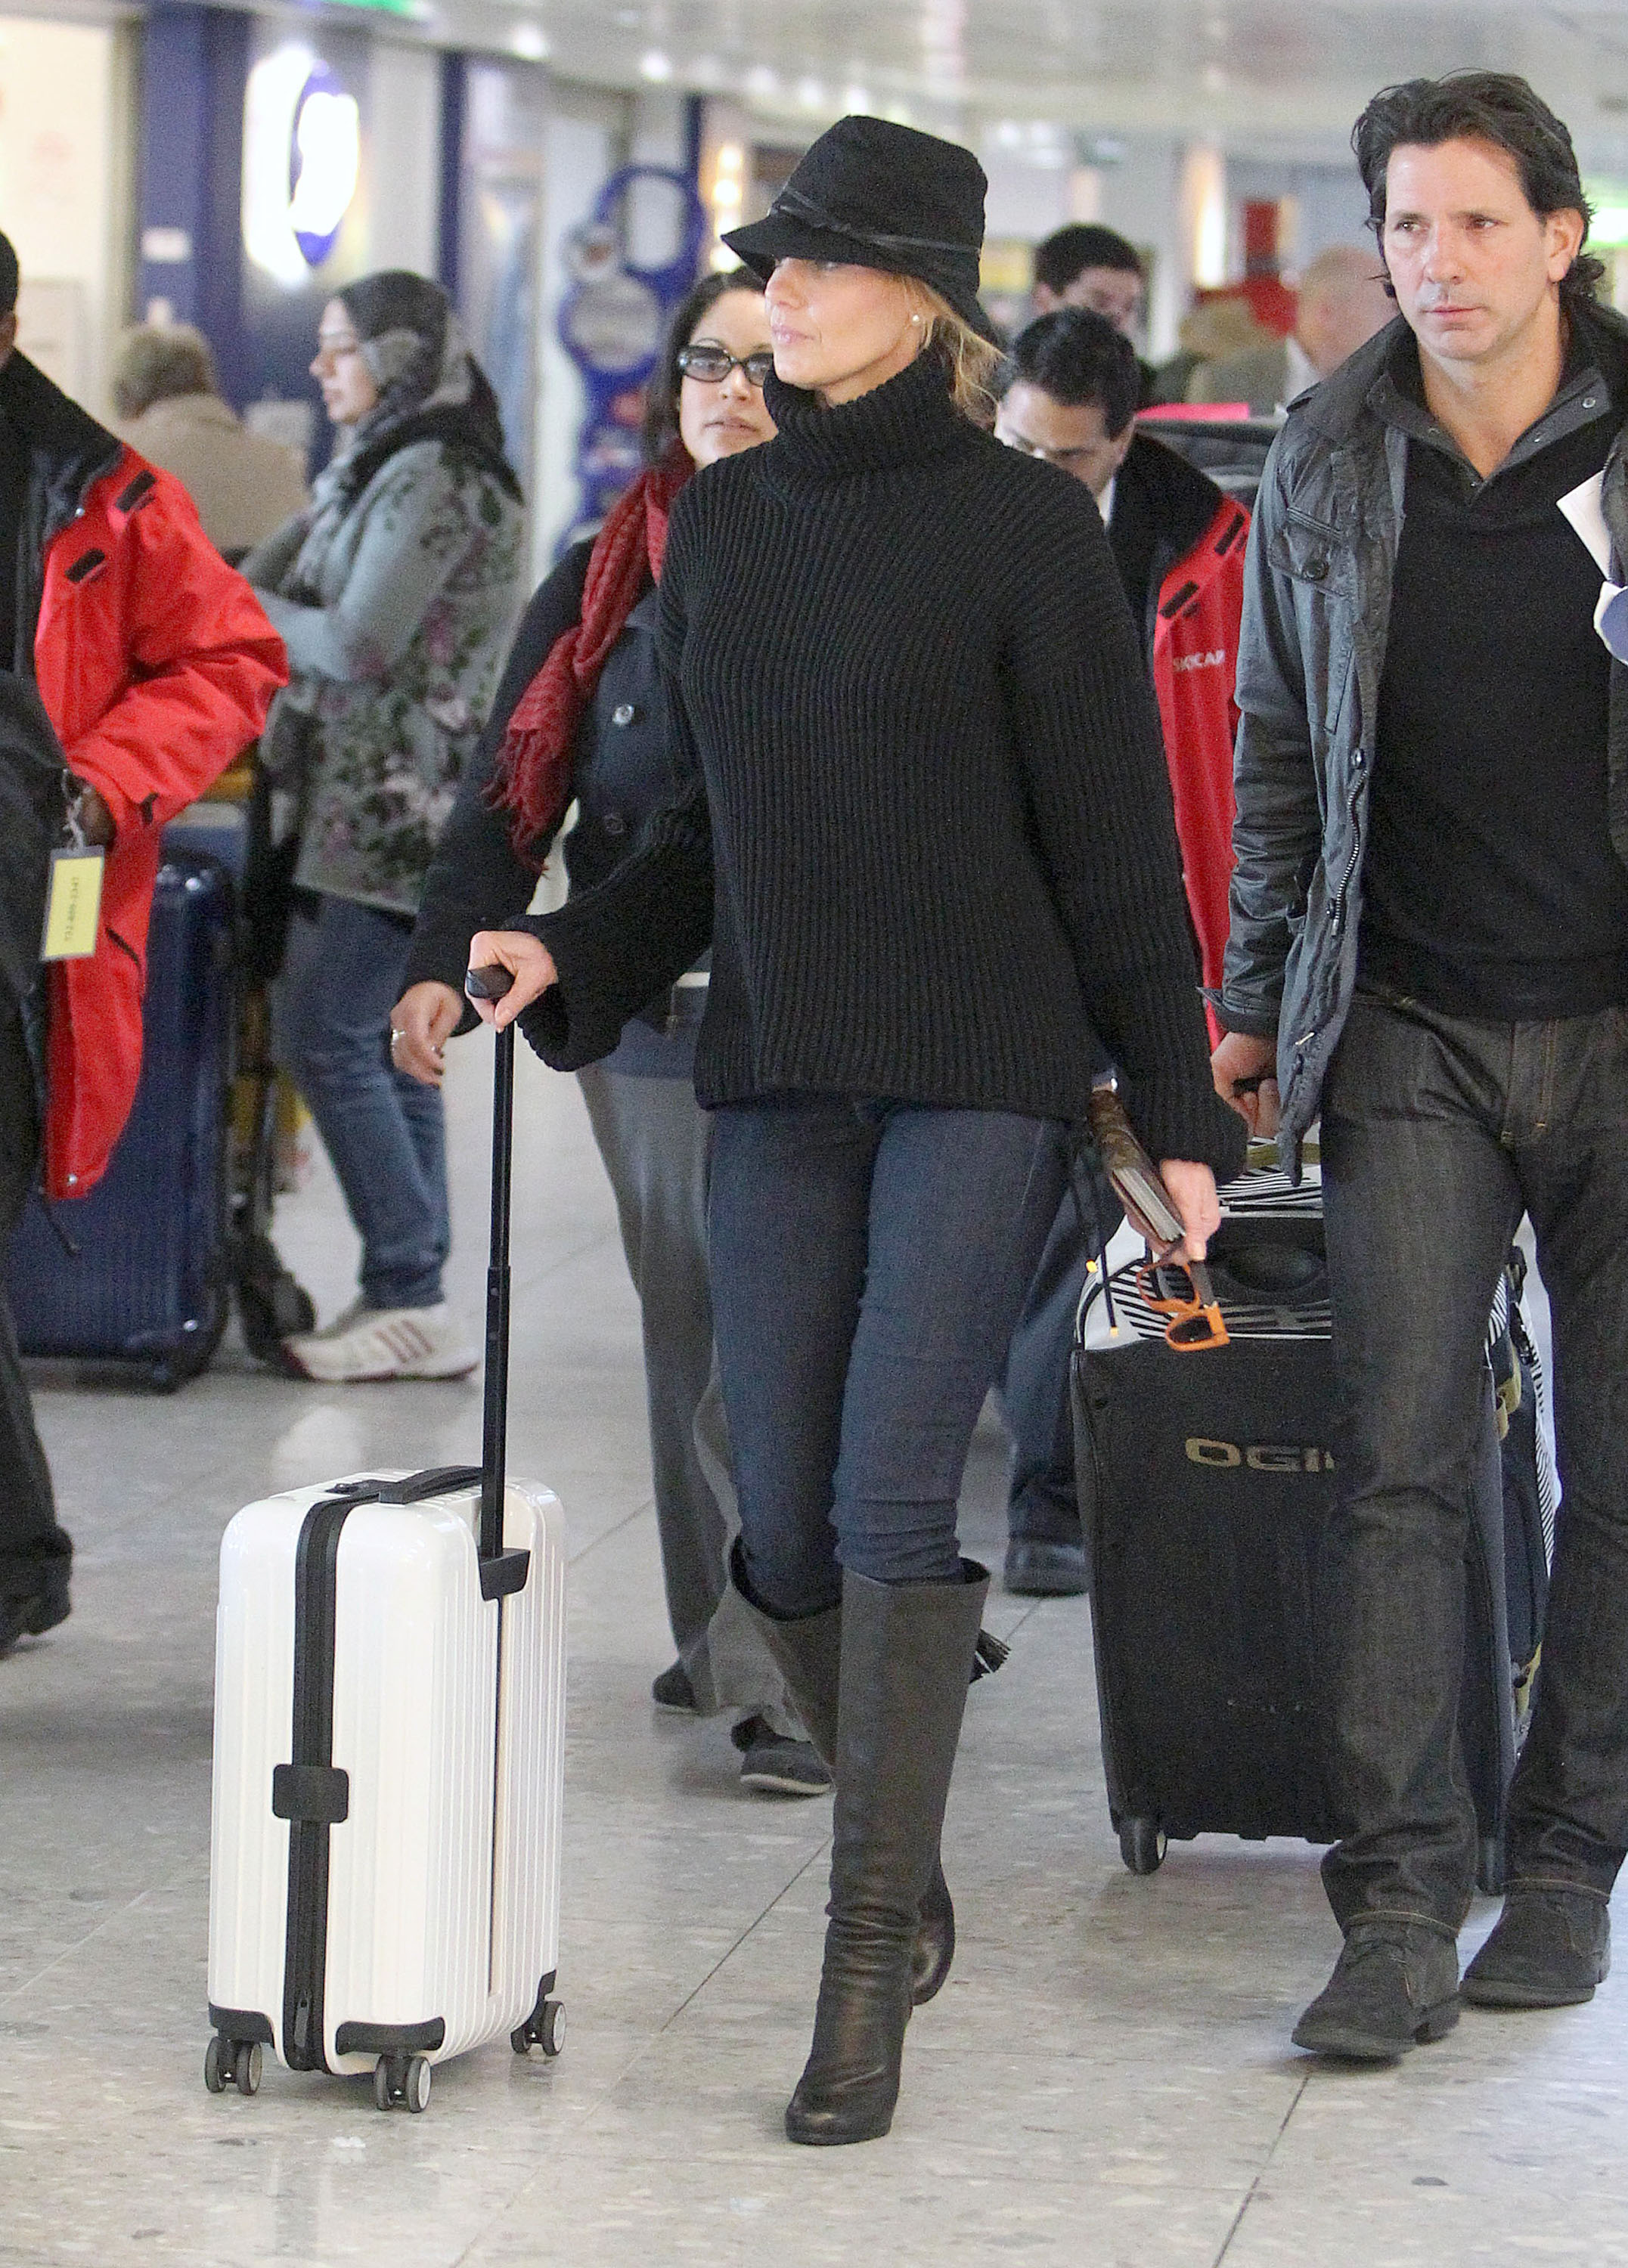 Faith Hill wore a black hat and sweater.